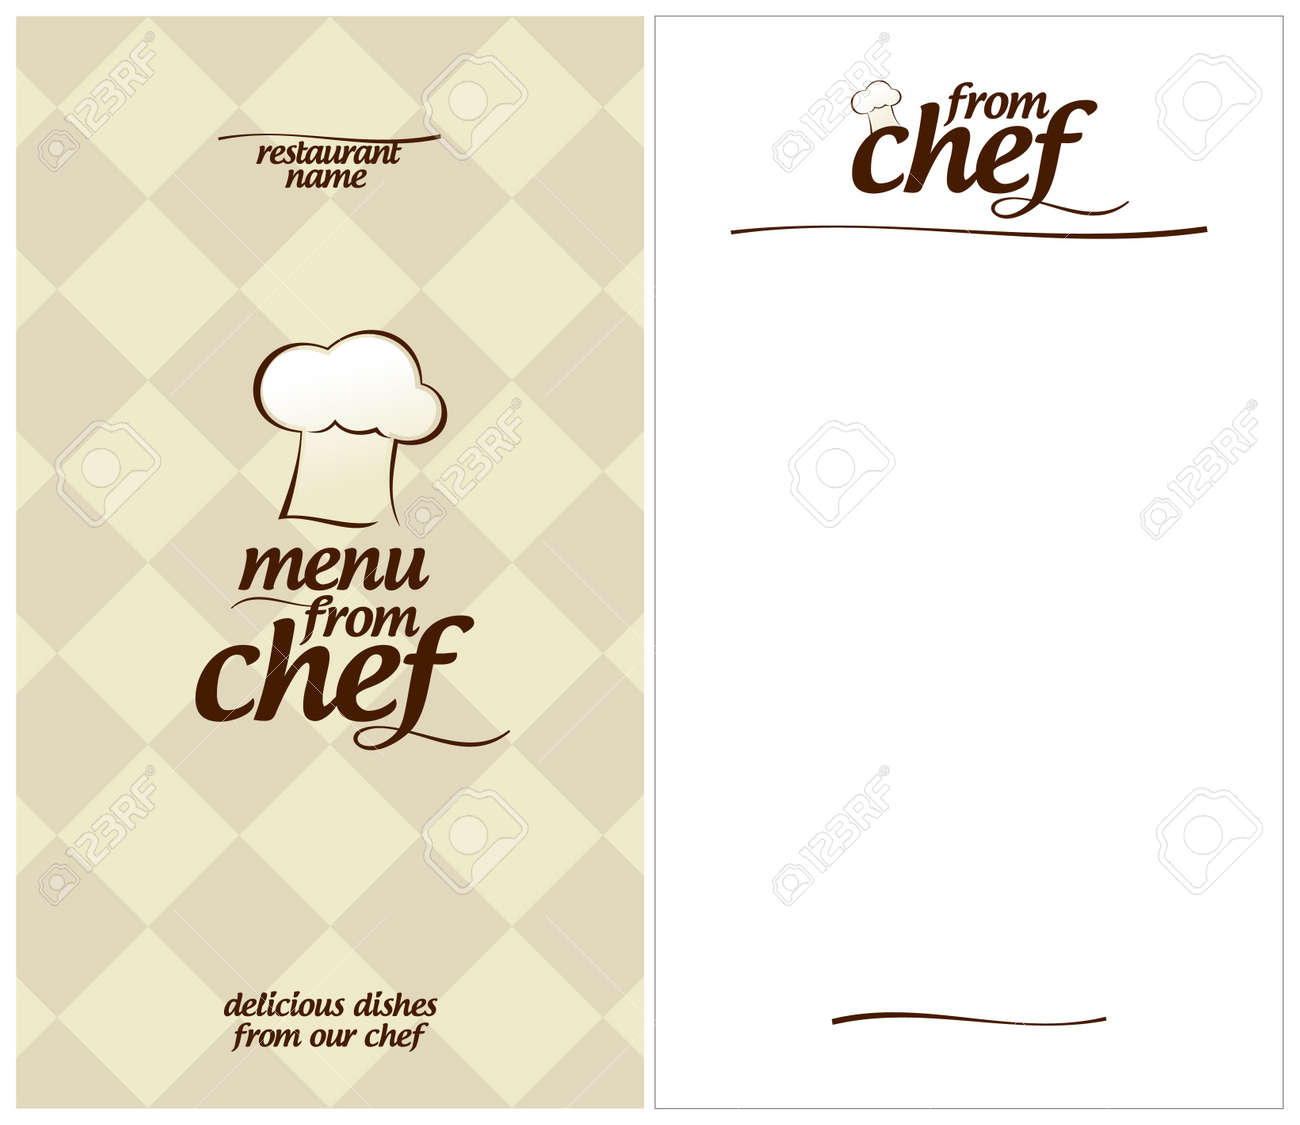 Special Menu From Chef Design Template And The Form For A List Of ...